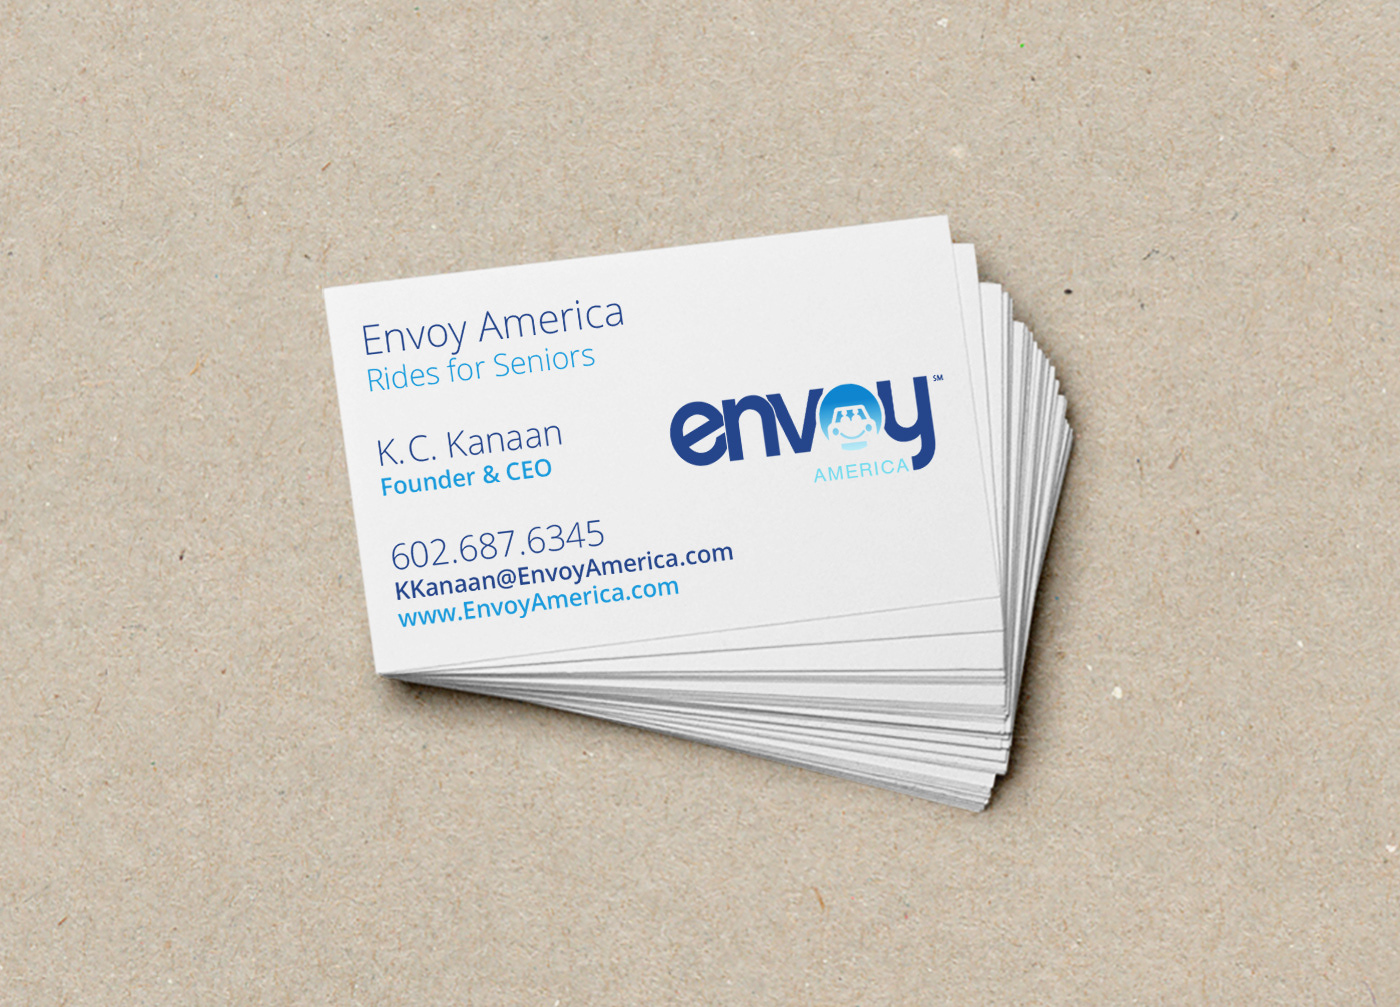 Michael Steinle - Productions for Envoy America